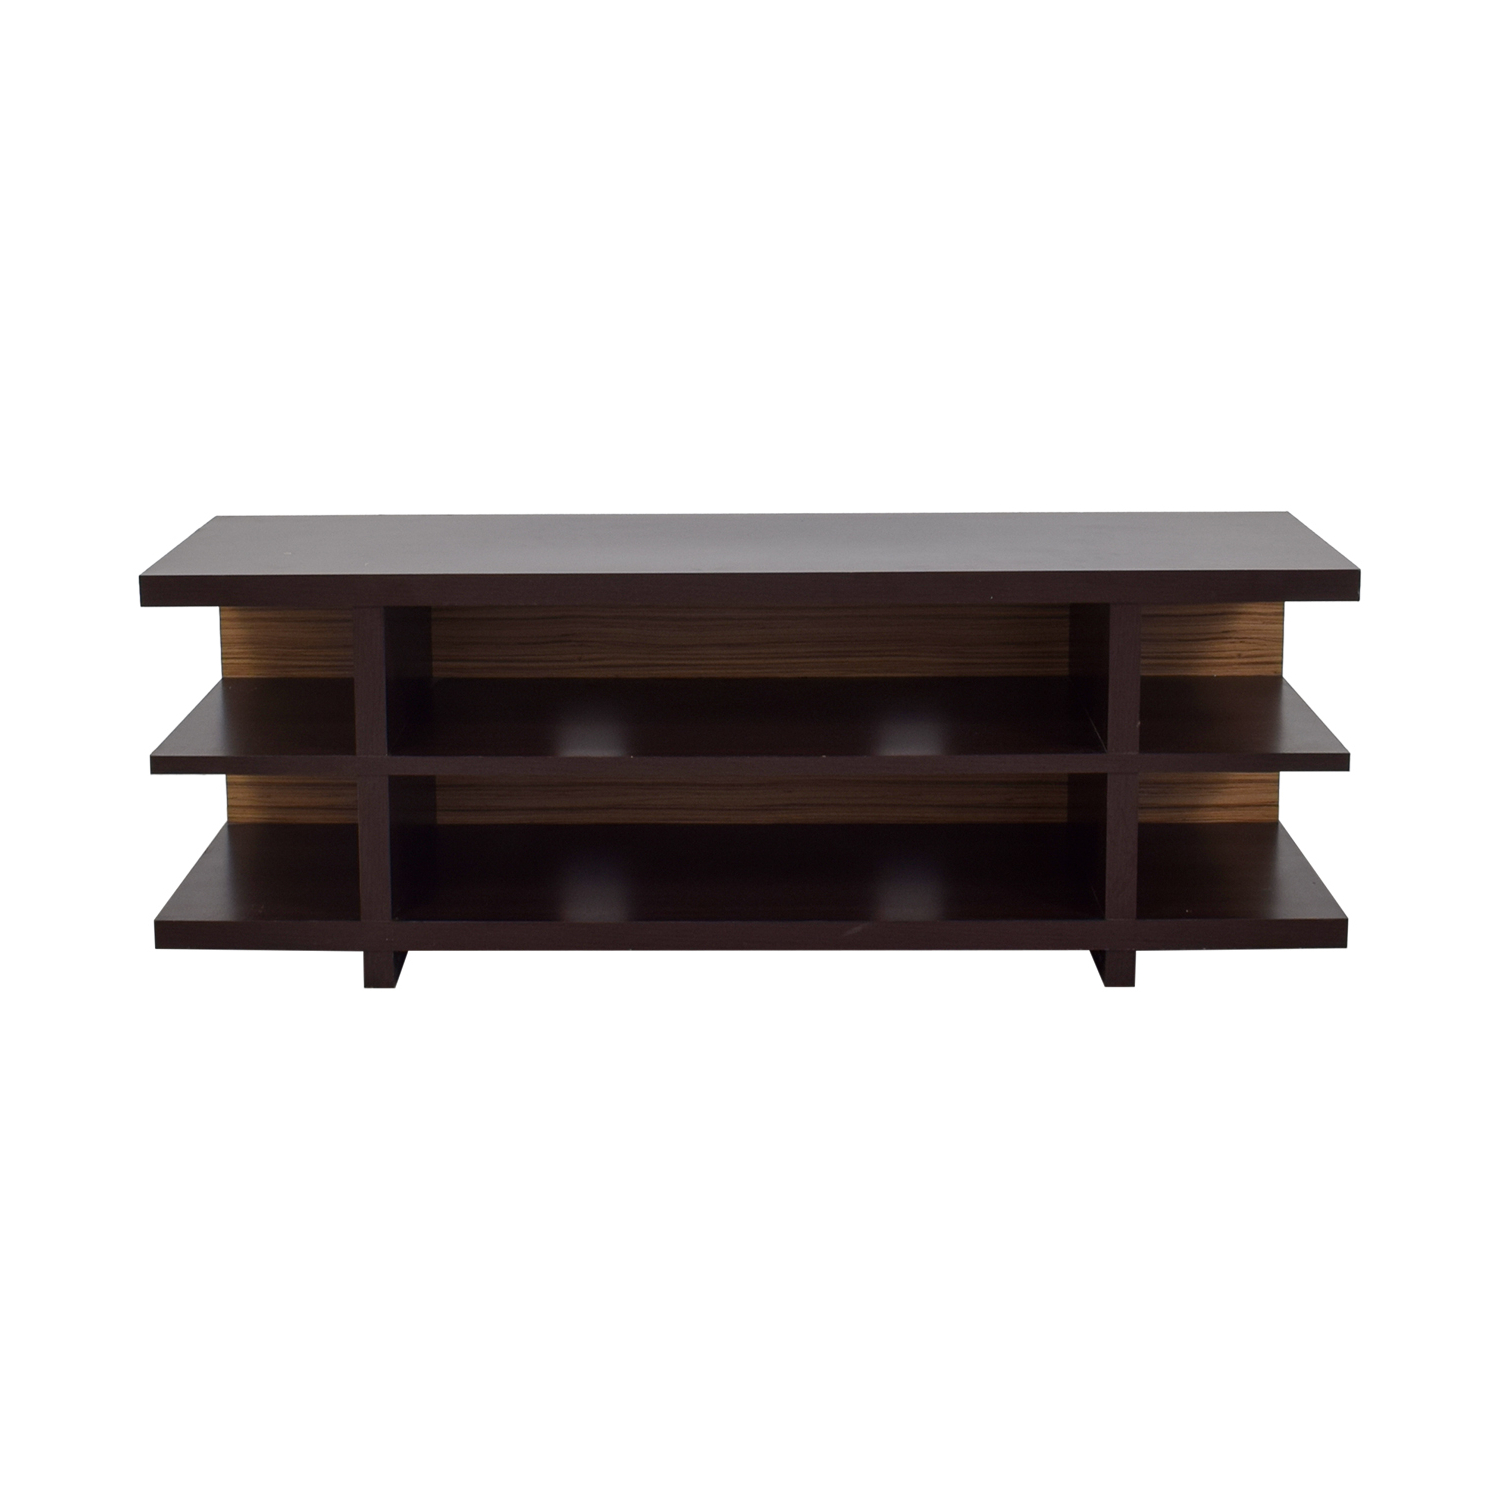 [%81% Off – Pottery Barn Pottery Barn Open Shelf Tv Stand / Storage Intended For Best And Newest Open Shelf Tv Stands|open Shelf Tv Stands In Favorite 81% Off – Pottery Barn Pottery Barn Open Shelf Tv Stand / Storage|2018 Open Shelf Tv Stands Throughout 81% Off – Pottery Barn Pottery Barn Open Shelf Tv Stand / Storage|best And Newest 81% Off – Pottery Barn Pottery Barn Open Shelf Tv Stand / Storage Pertaining To Open Shelf Tv Stands%] (View 8 of 20)